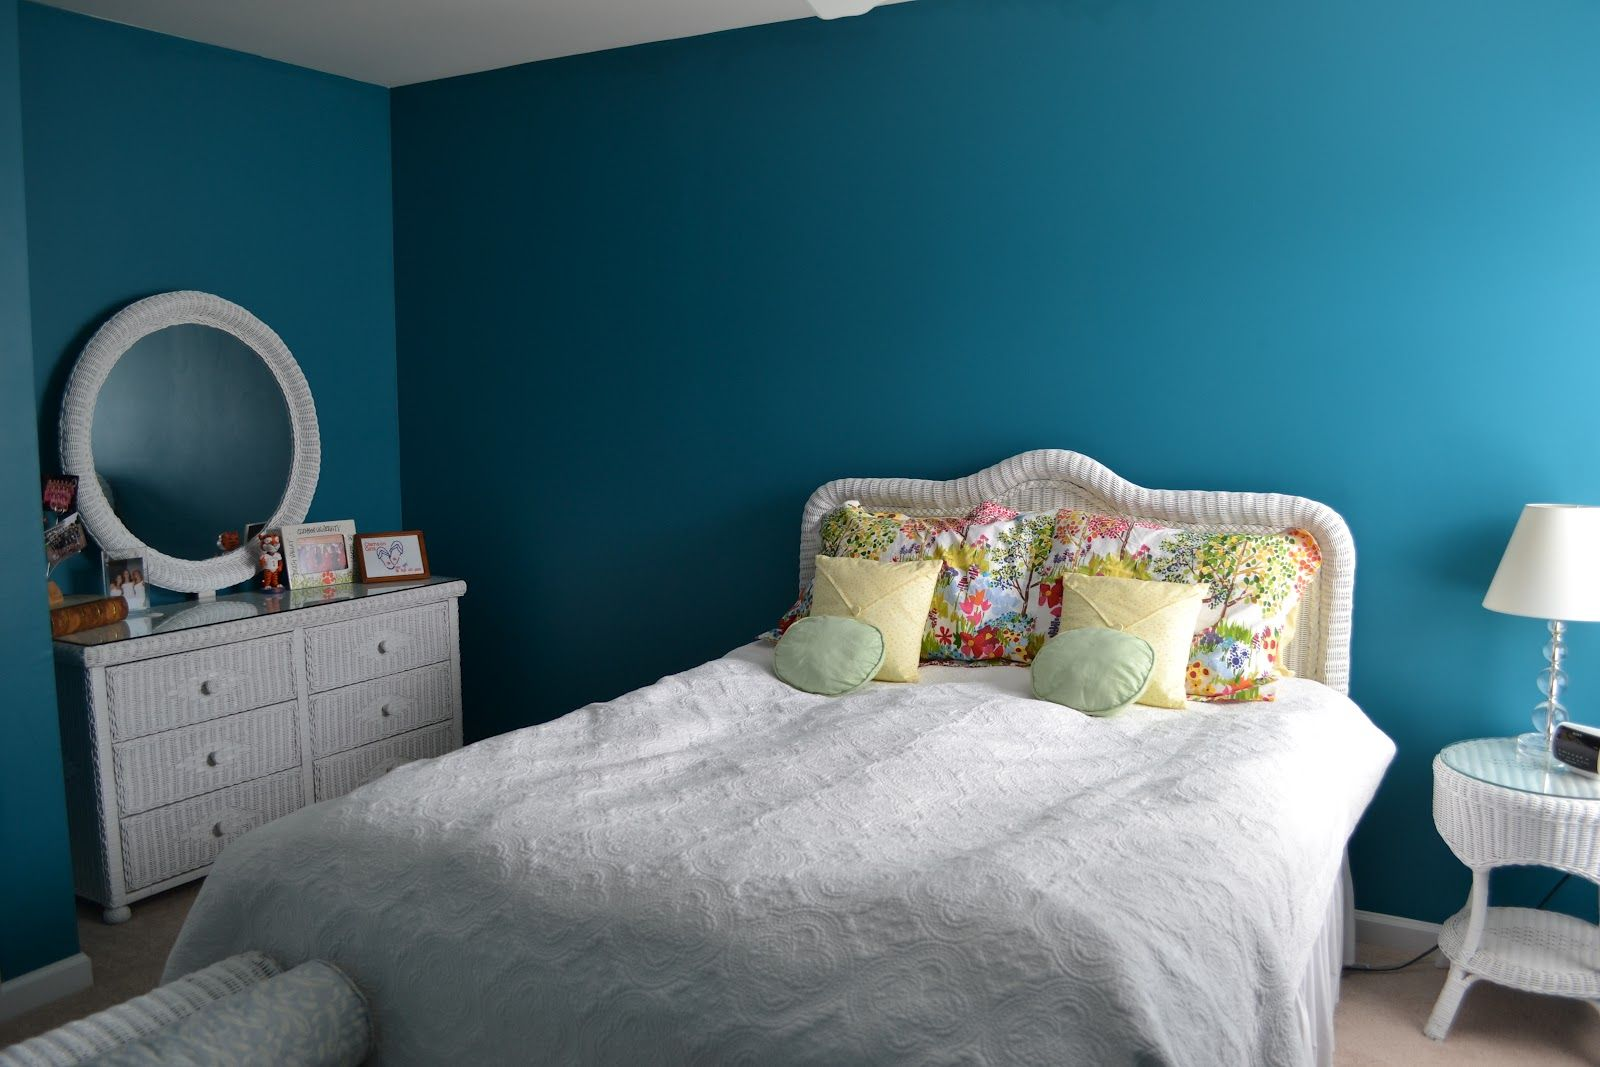 Maxi Teal Sherwin Williams For The Home Pinterest Bedroom Accent Walls Room And Wall Colors